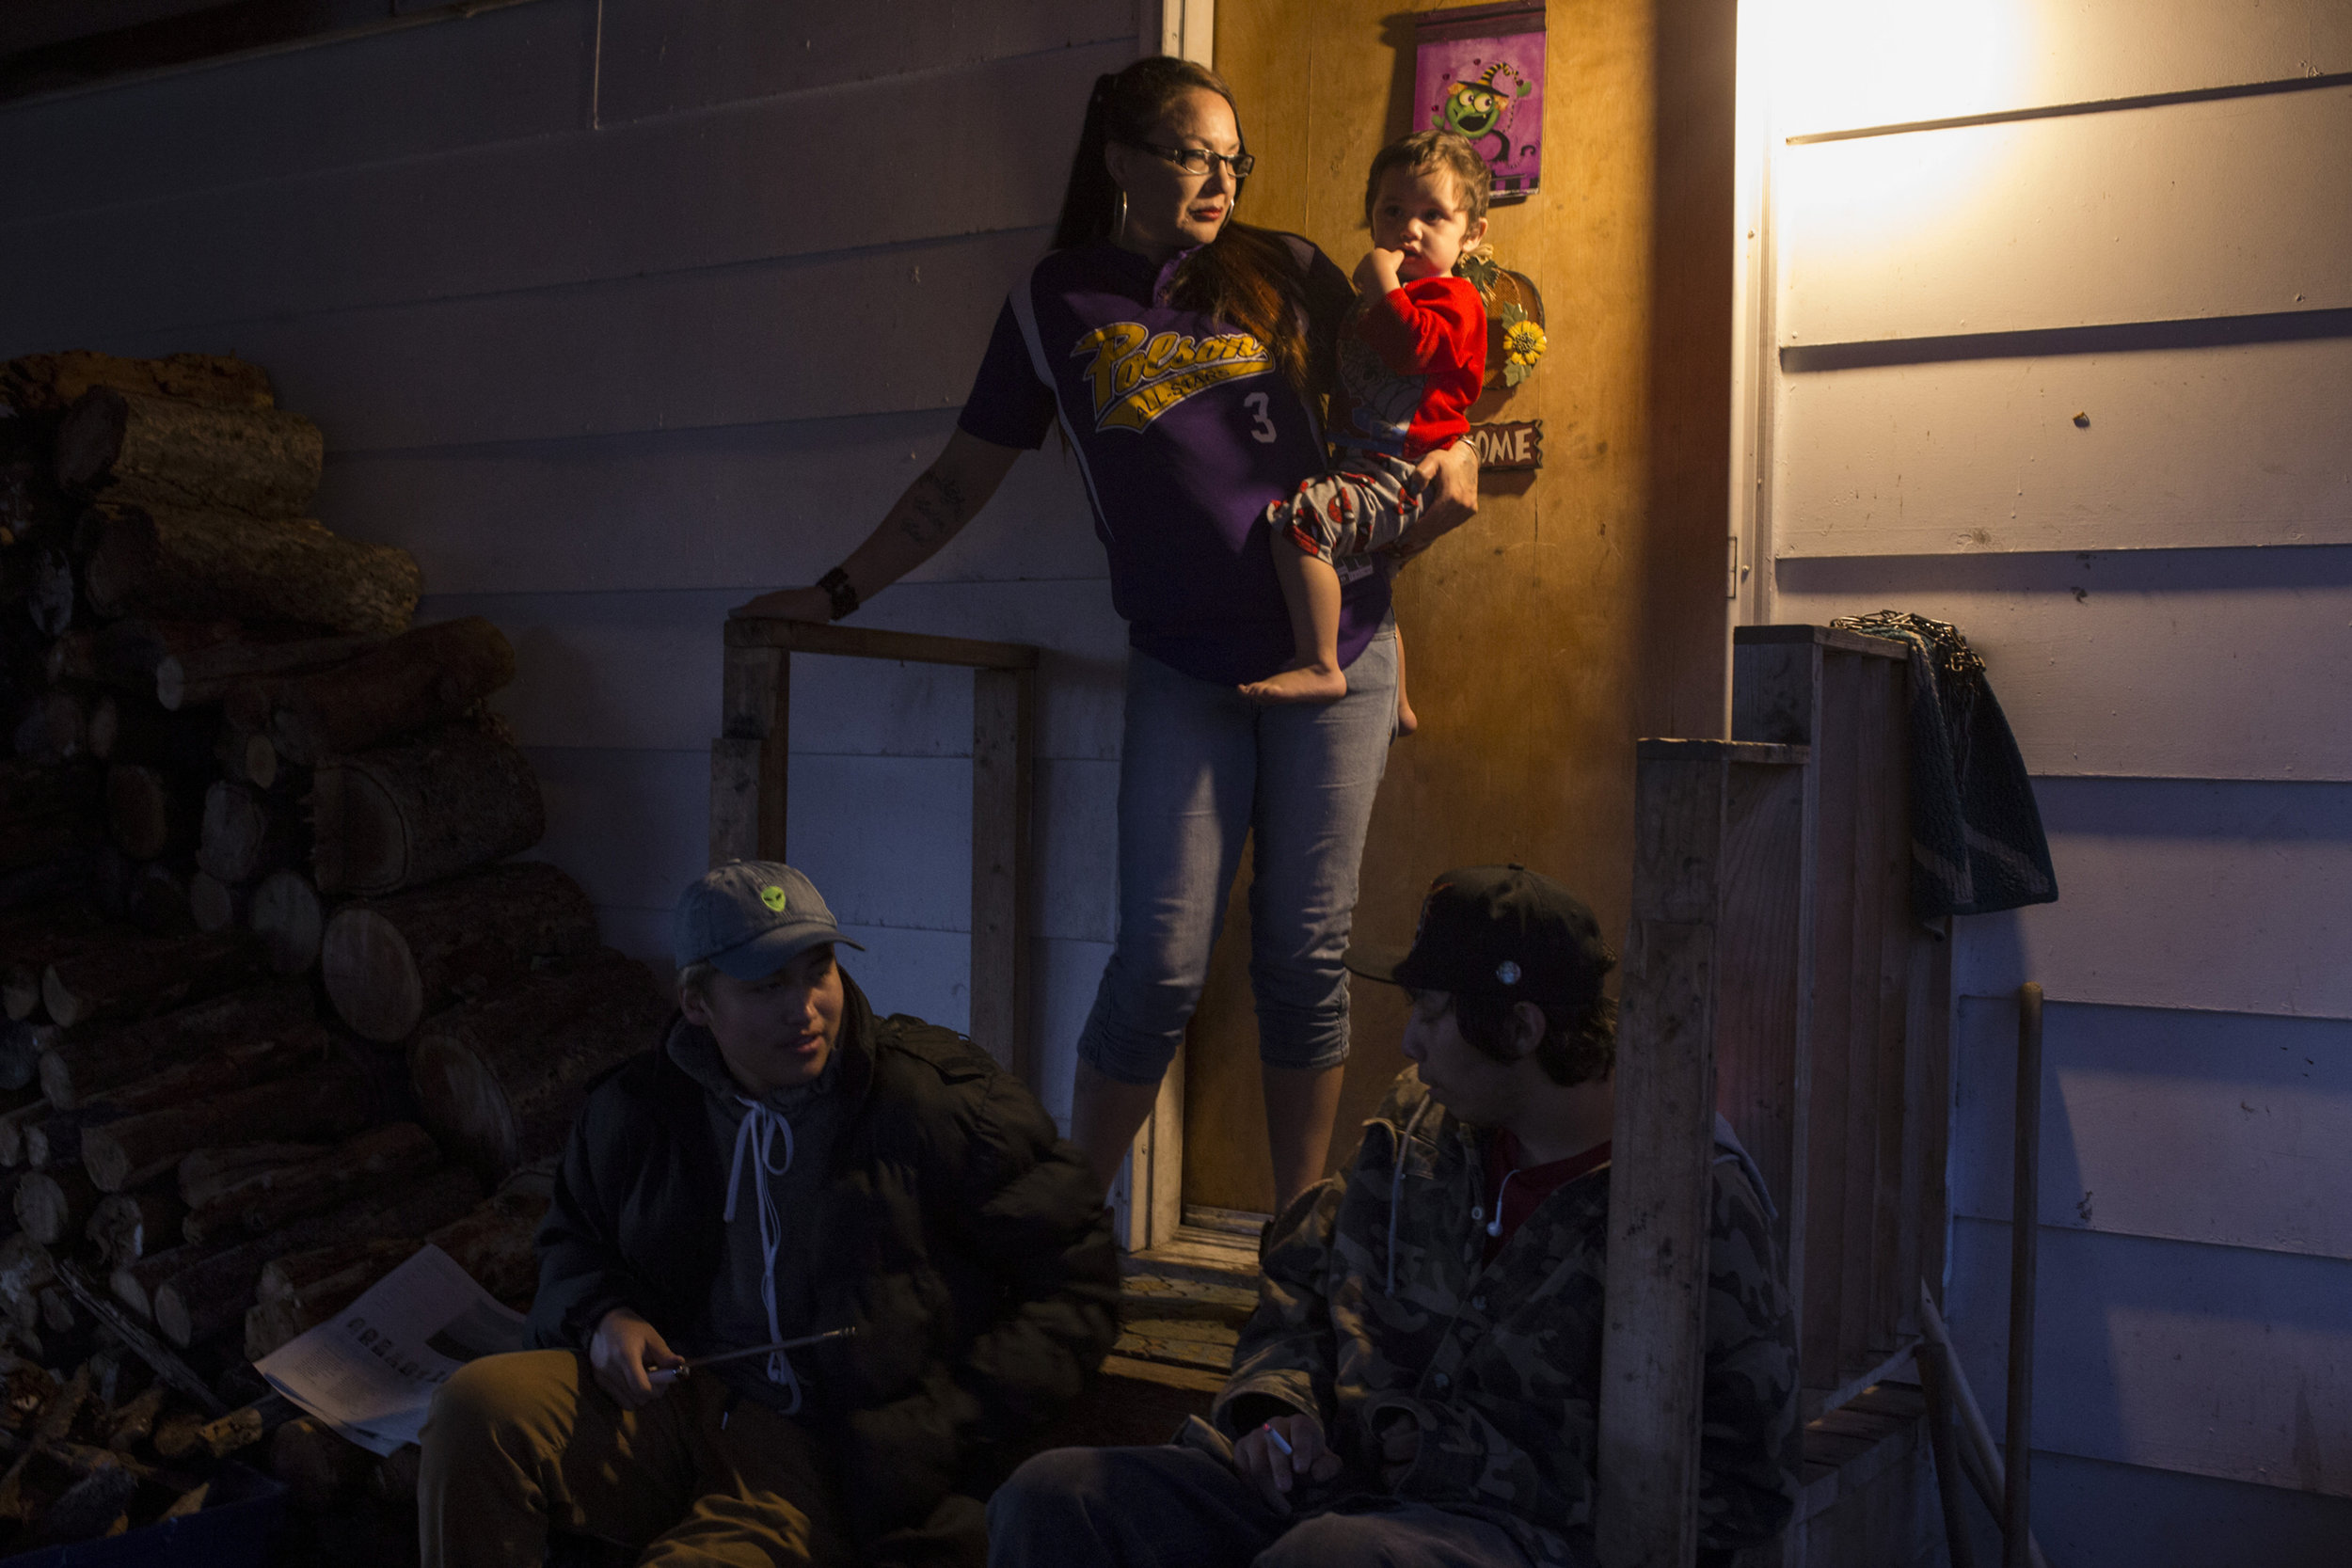 Susie Boushie, 37, looks out from her front porch while holding her grandson Niste Omeasoo, 2, as Xavier Smith, 17, and his friend Jerome hang out with Susie's son, Chris, at their home in, Pablo, Montana., on Sunday, October 22, 2017.